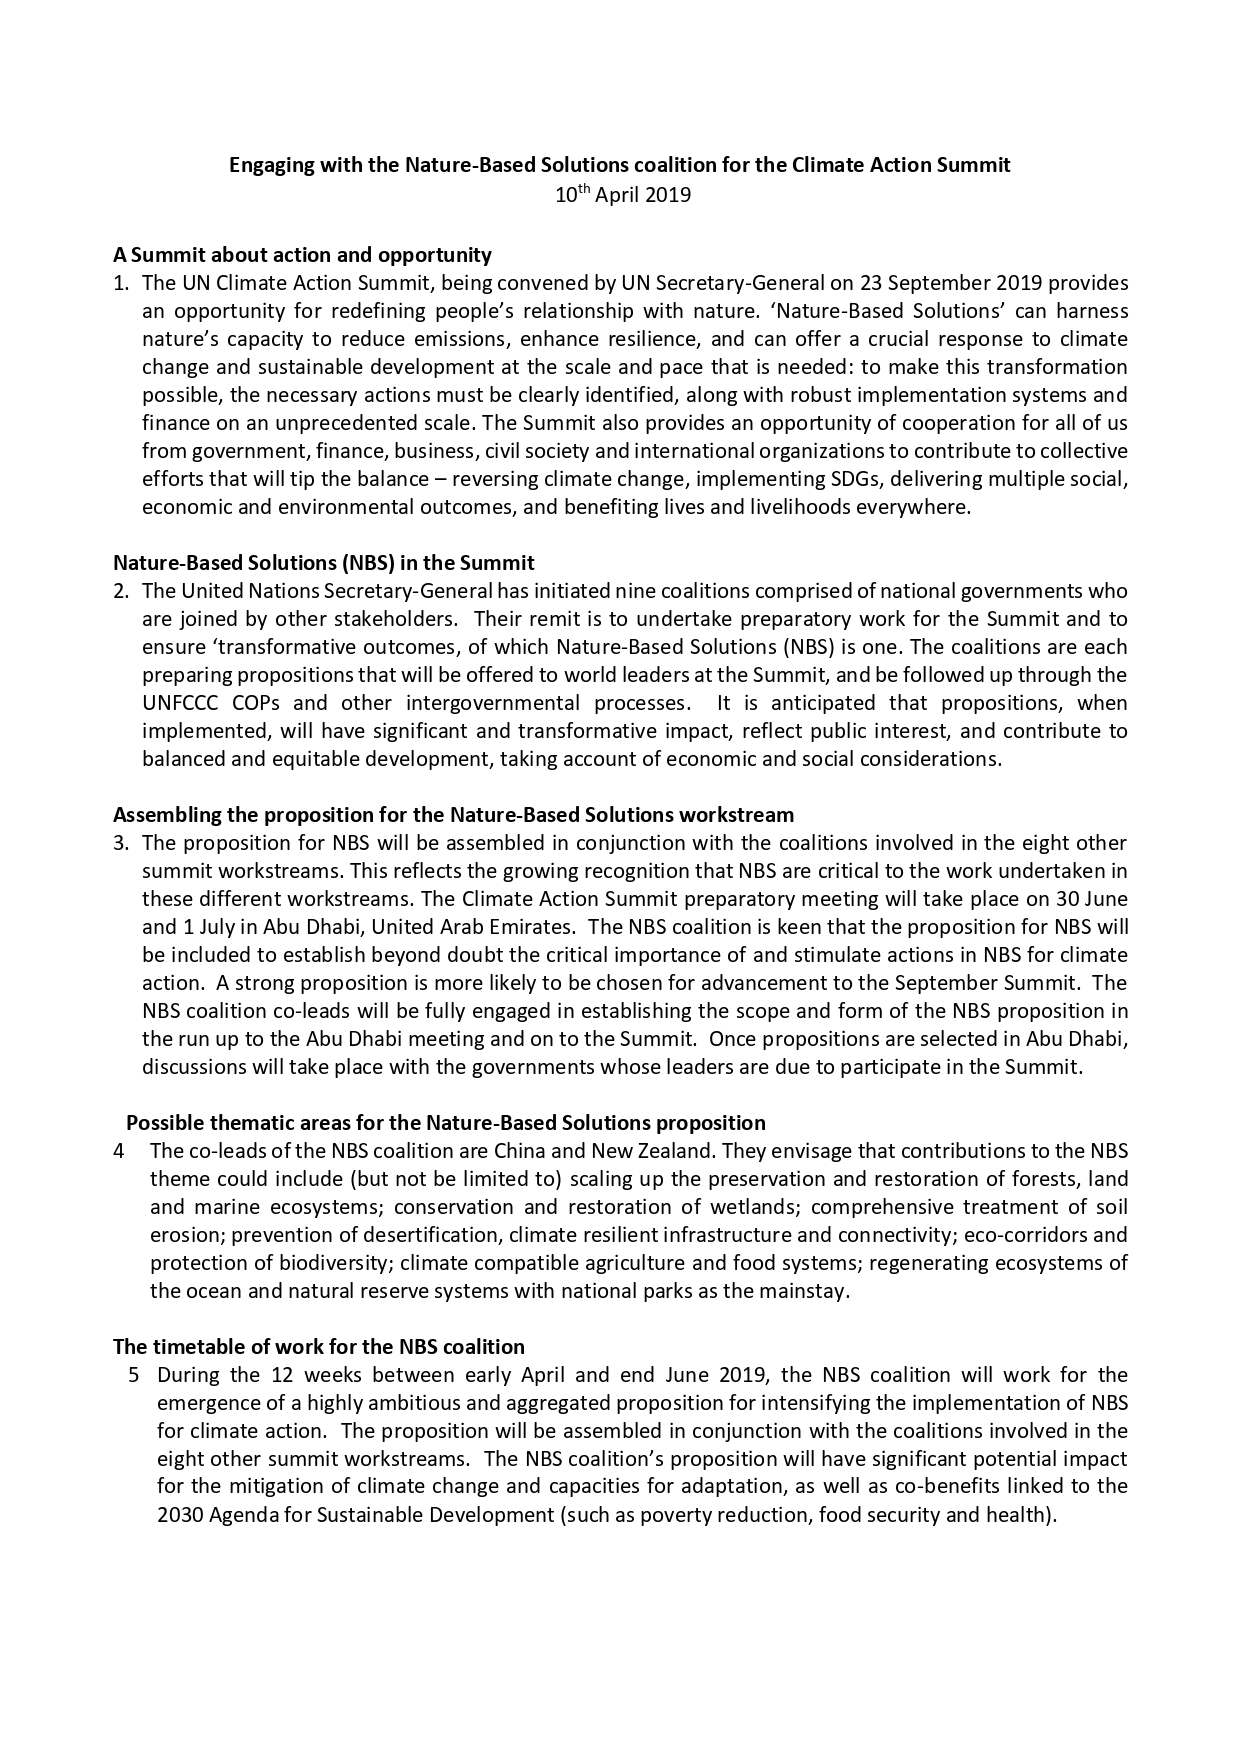 Engaging+on+NBS+Climate++Action+Summit+(EN)_page-0001.jpg